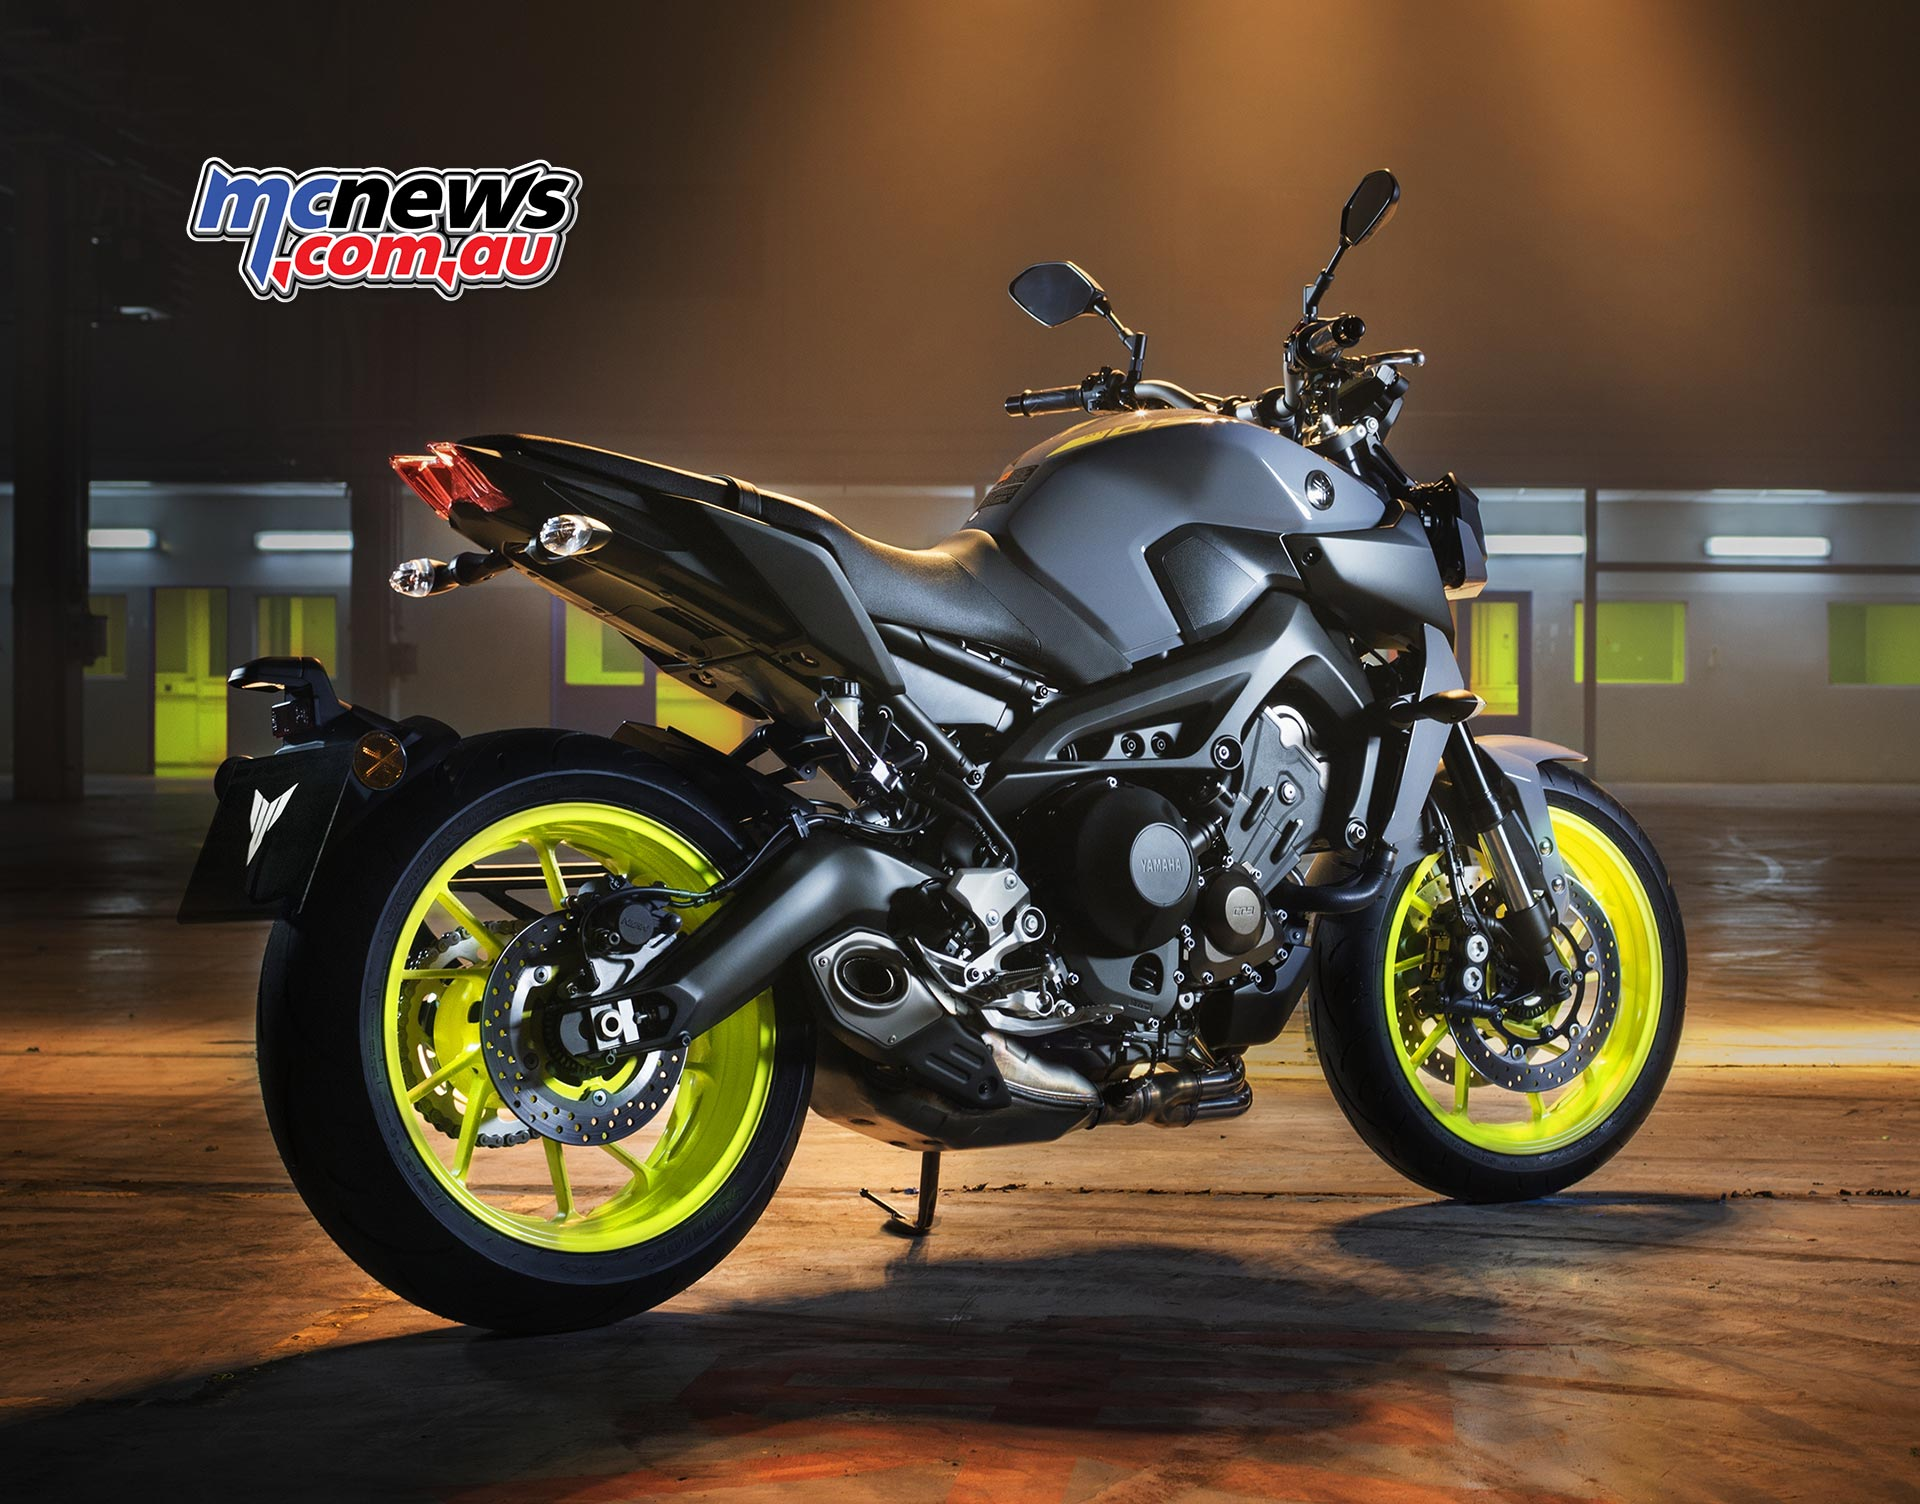 Led Lights For Motorcycle >> Yamaha MT-09 updated for 2017 | MCNews.com.au